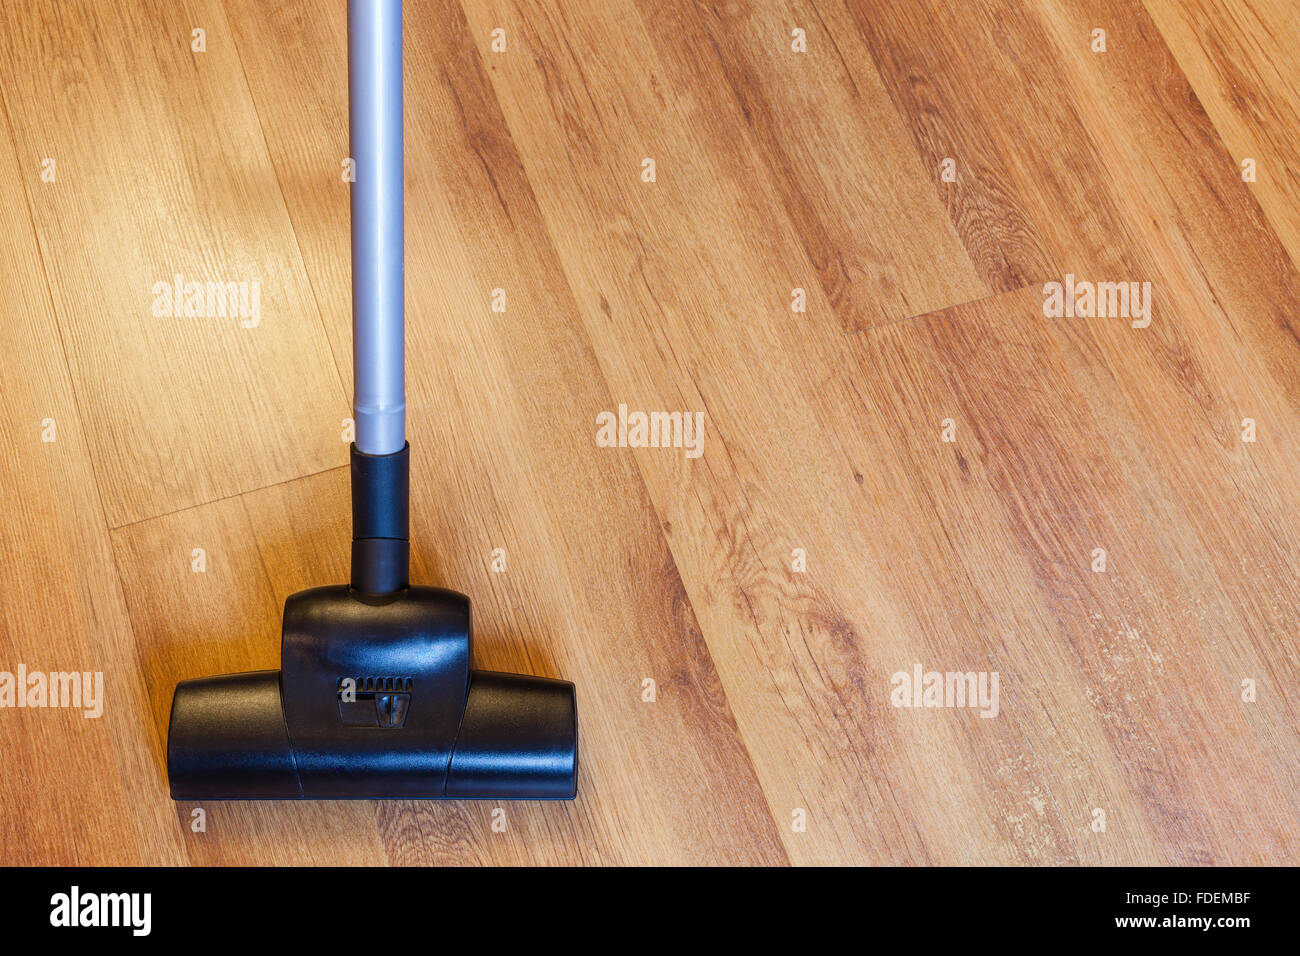 Front View Of Vacuuming Laminate Floor By Vacuum Cleaner At Home